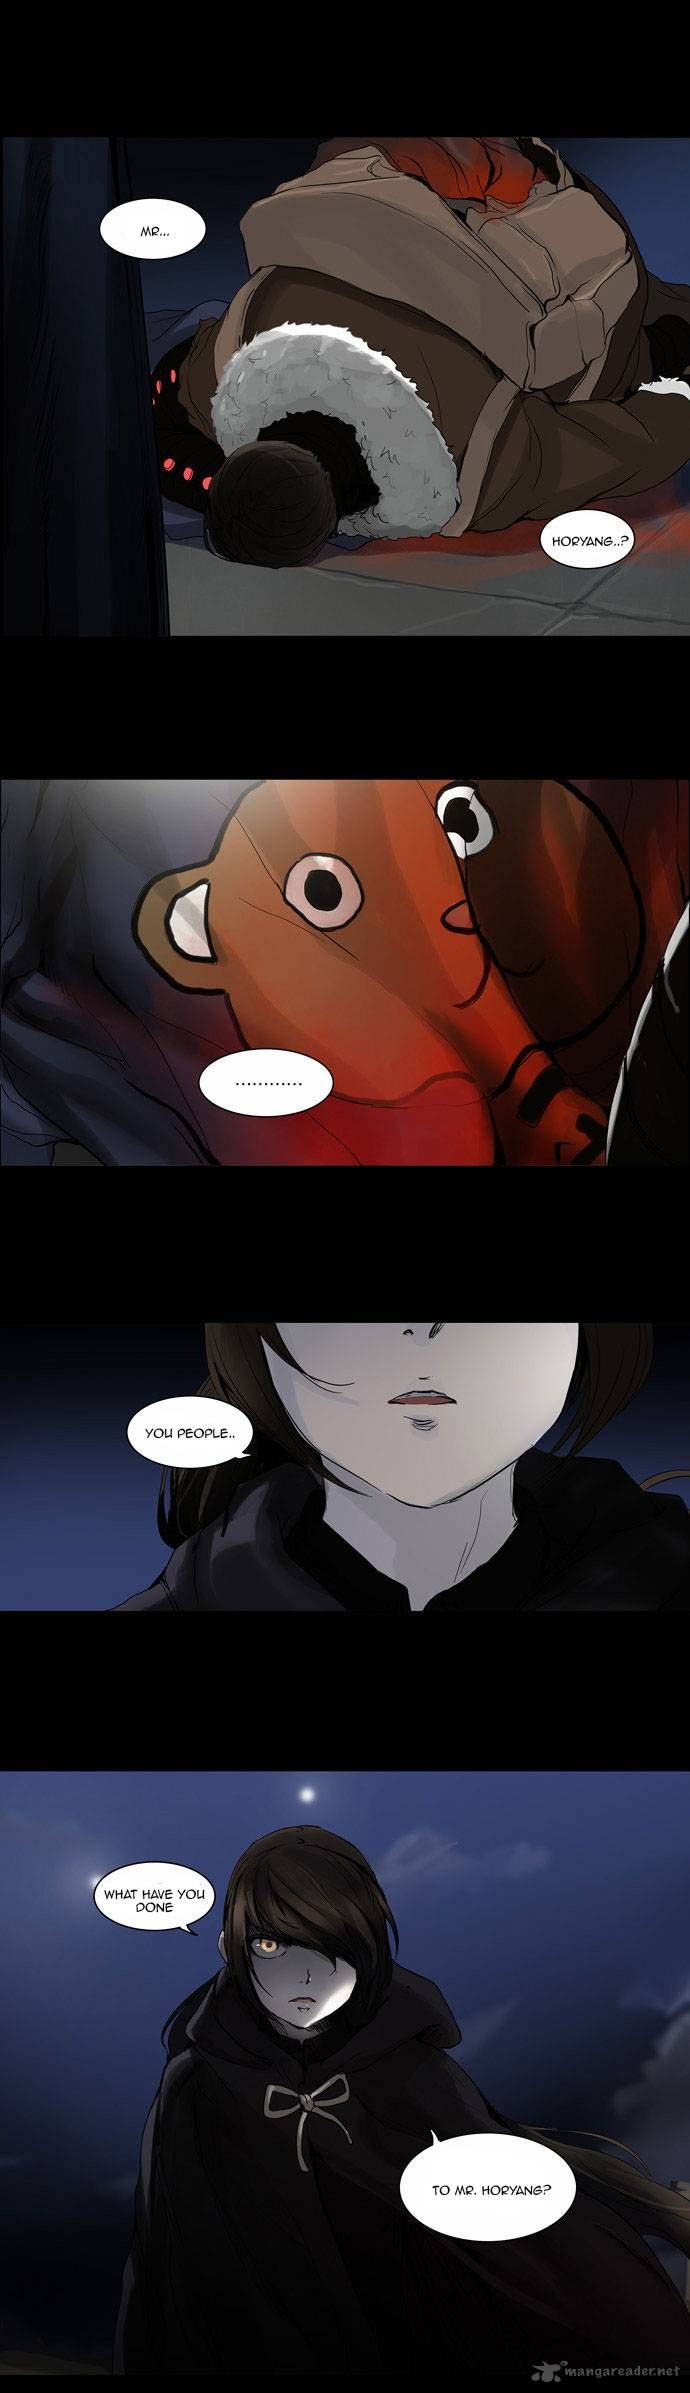 Tower of God 129 Page 3